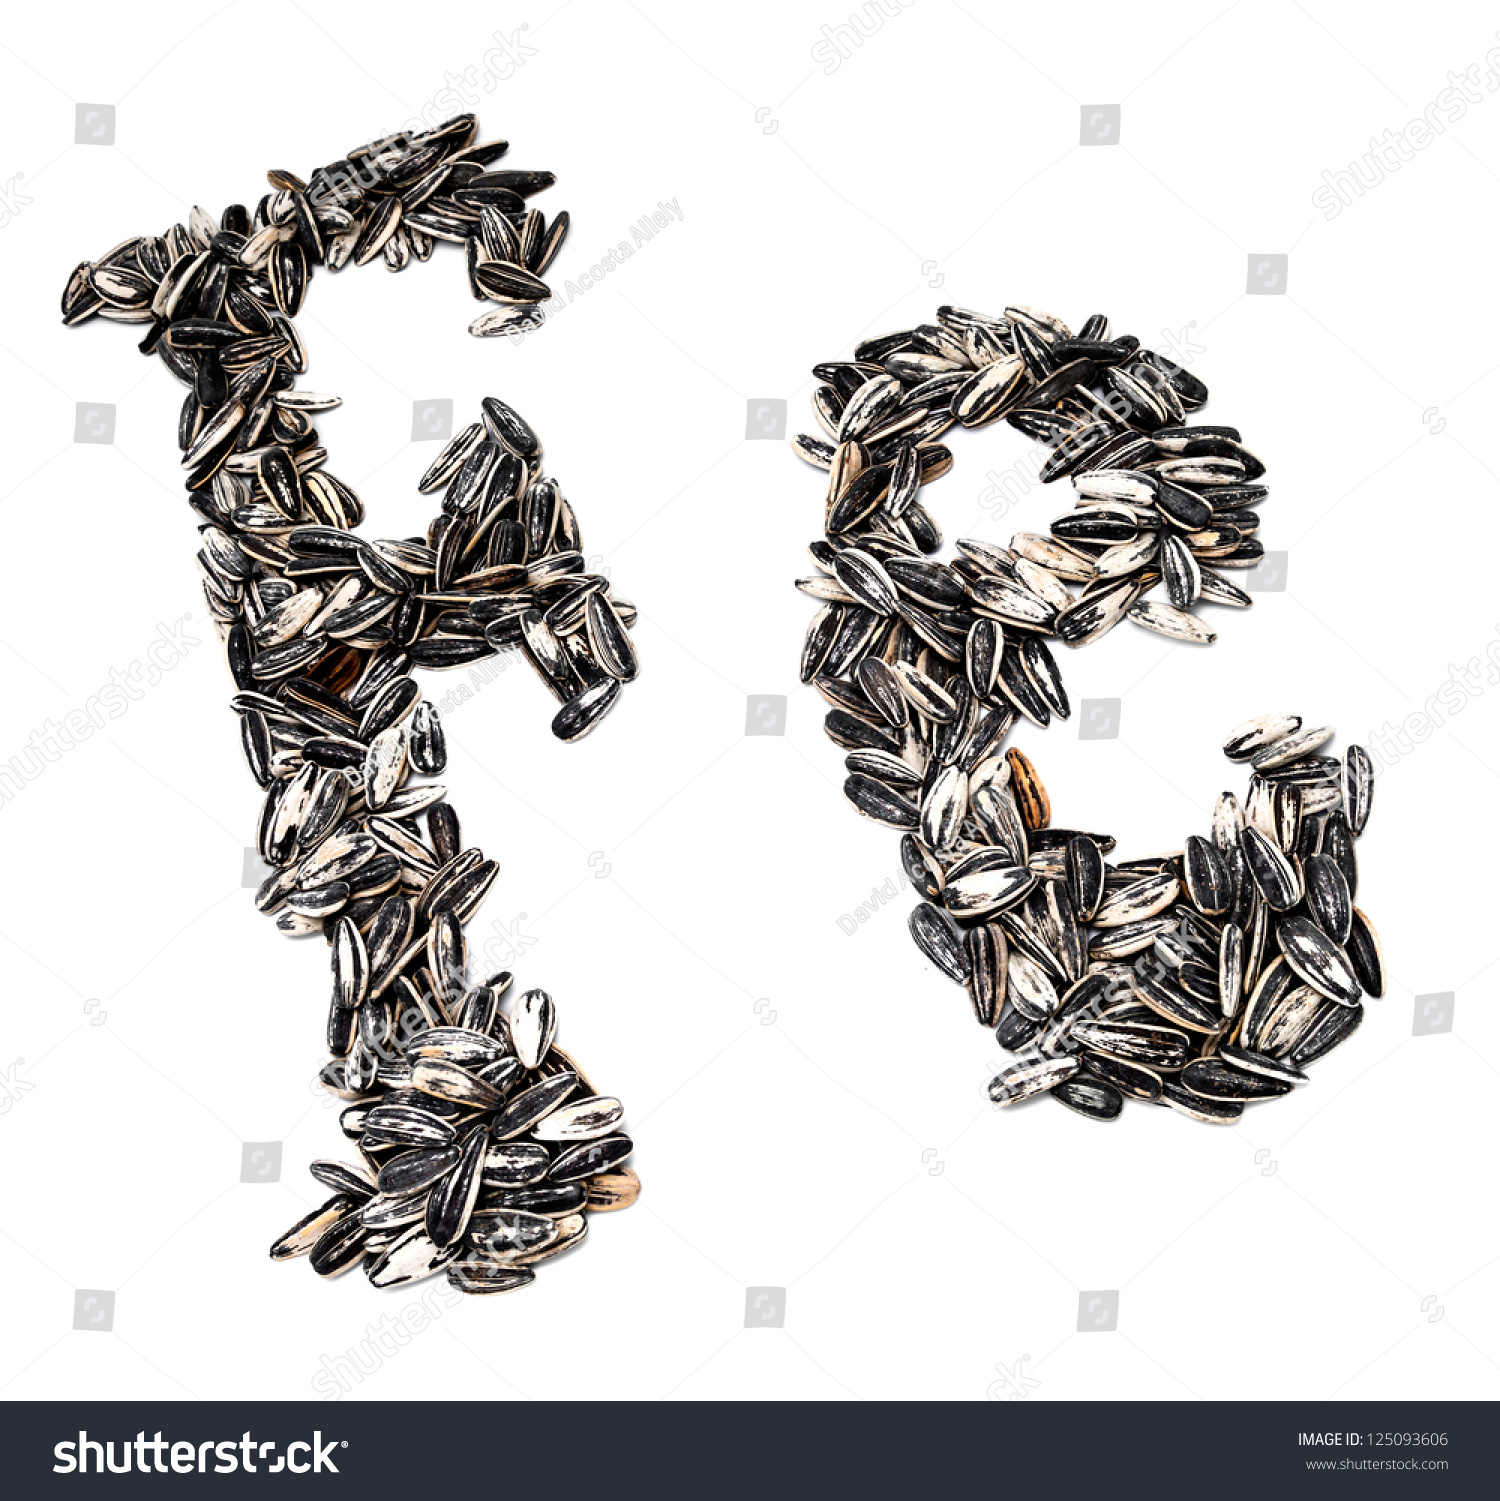 Fe name iron periodic table made stock photo 125093606 shutterstock fe is the name of the iron in the periodic table made by sunflower seeds gamestrikefo Images